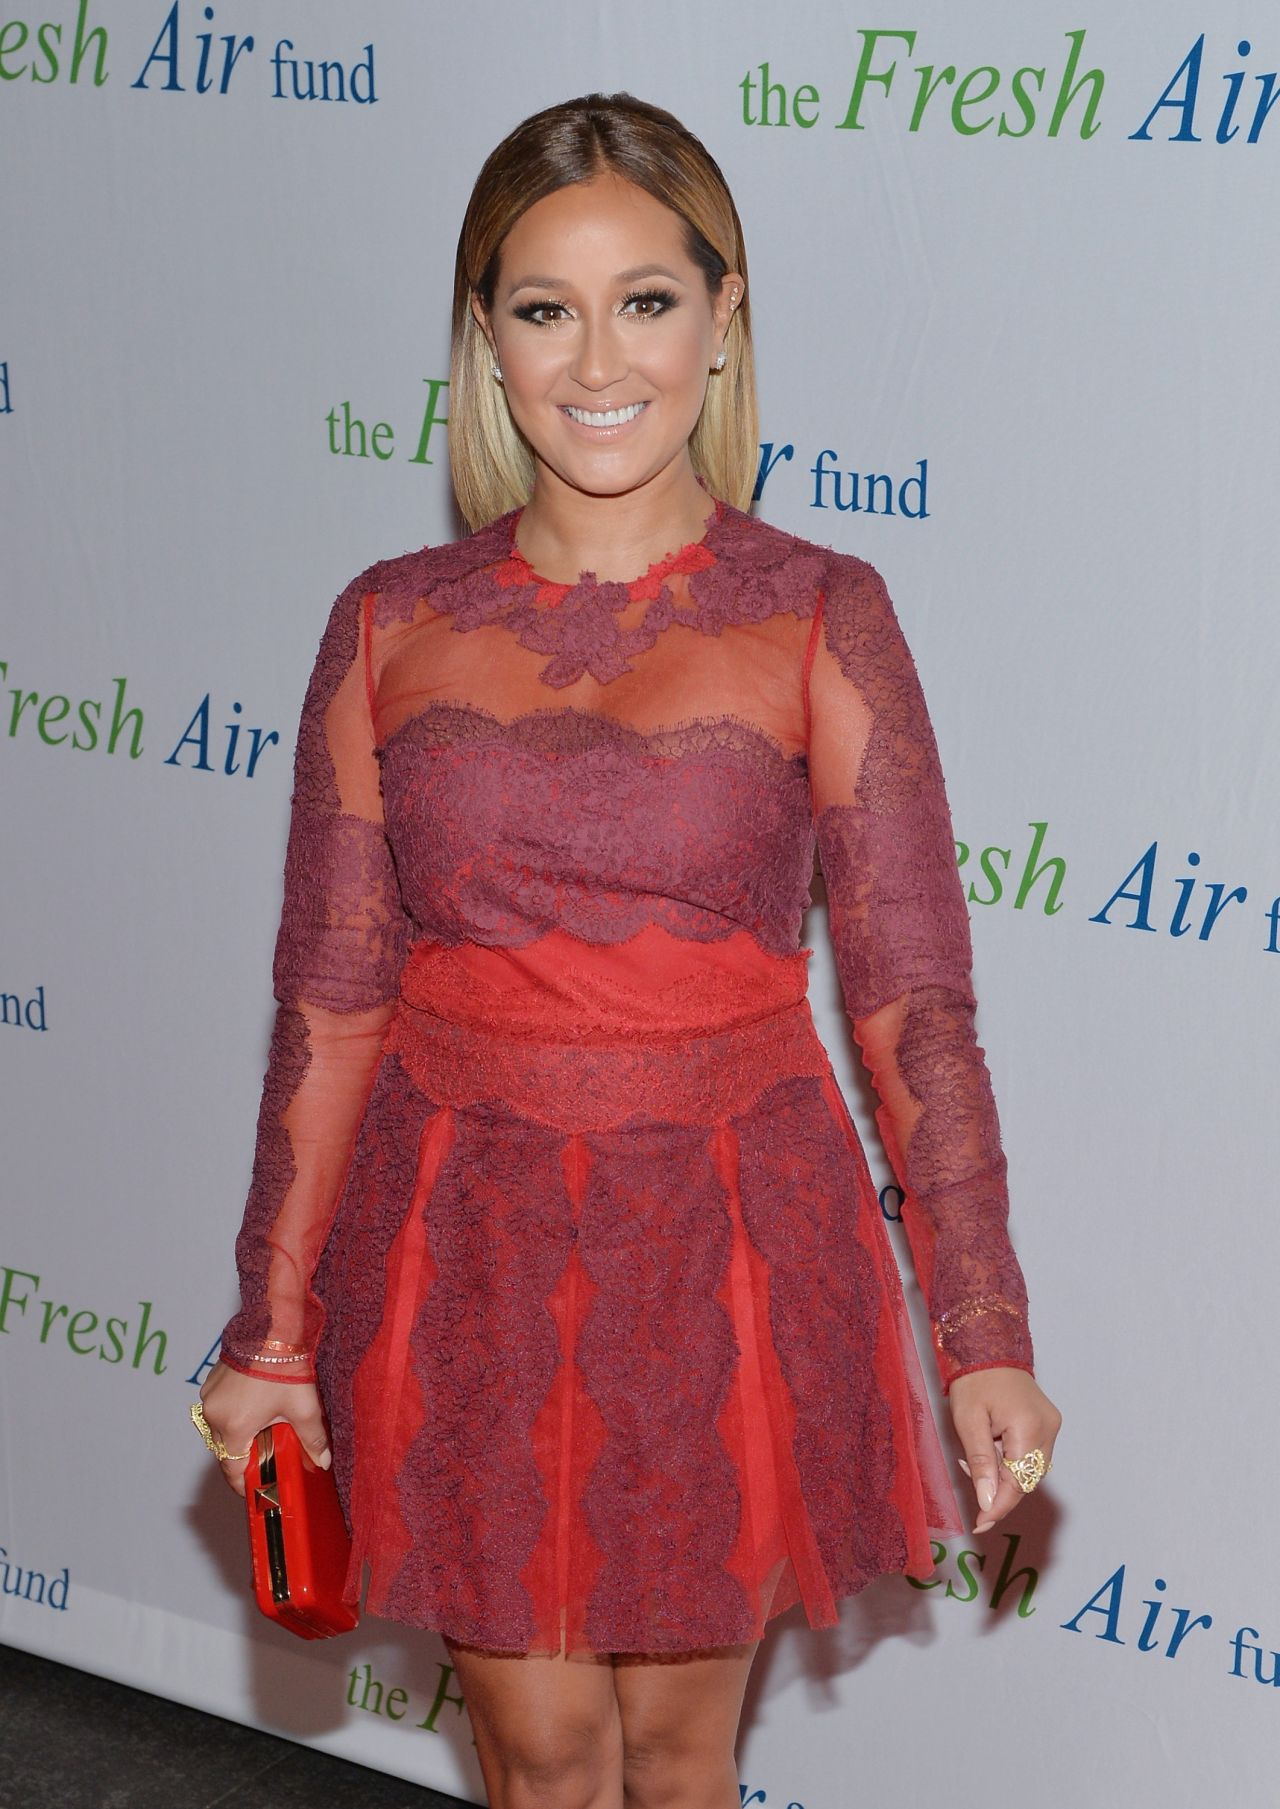 Adrienne Bailon - 2014 Fresh Air Fund Honoring Our American Hero in New York City